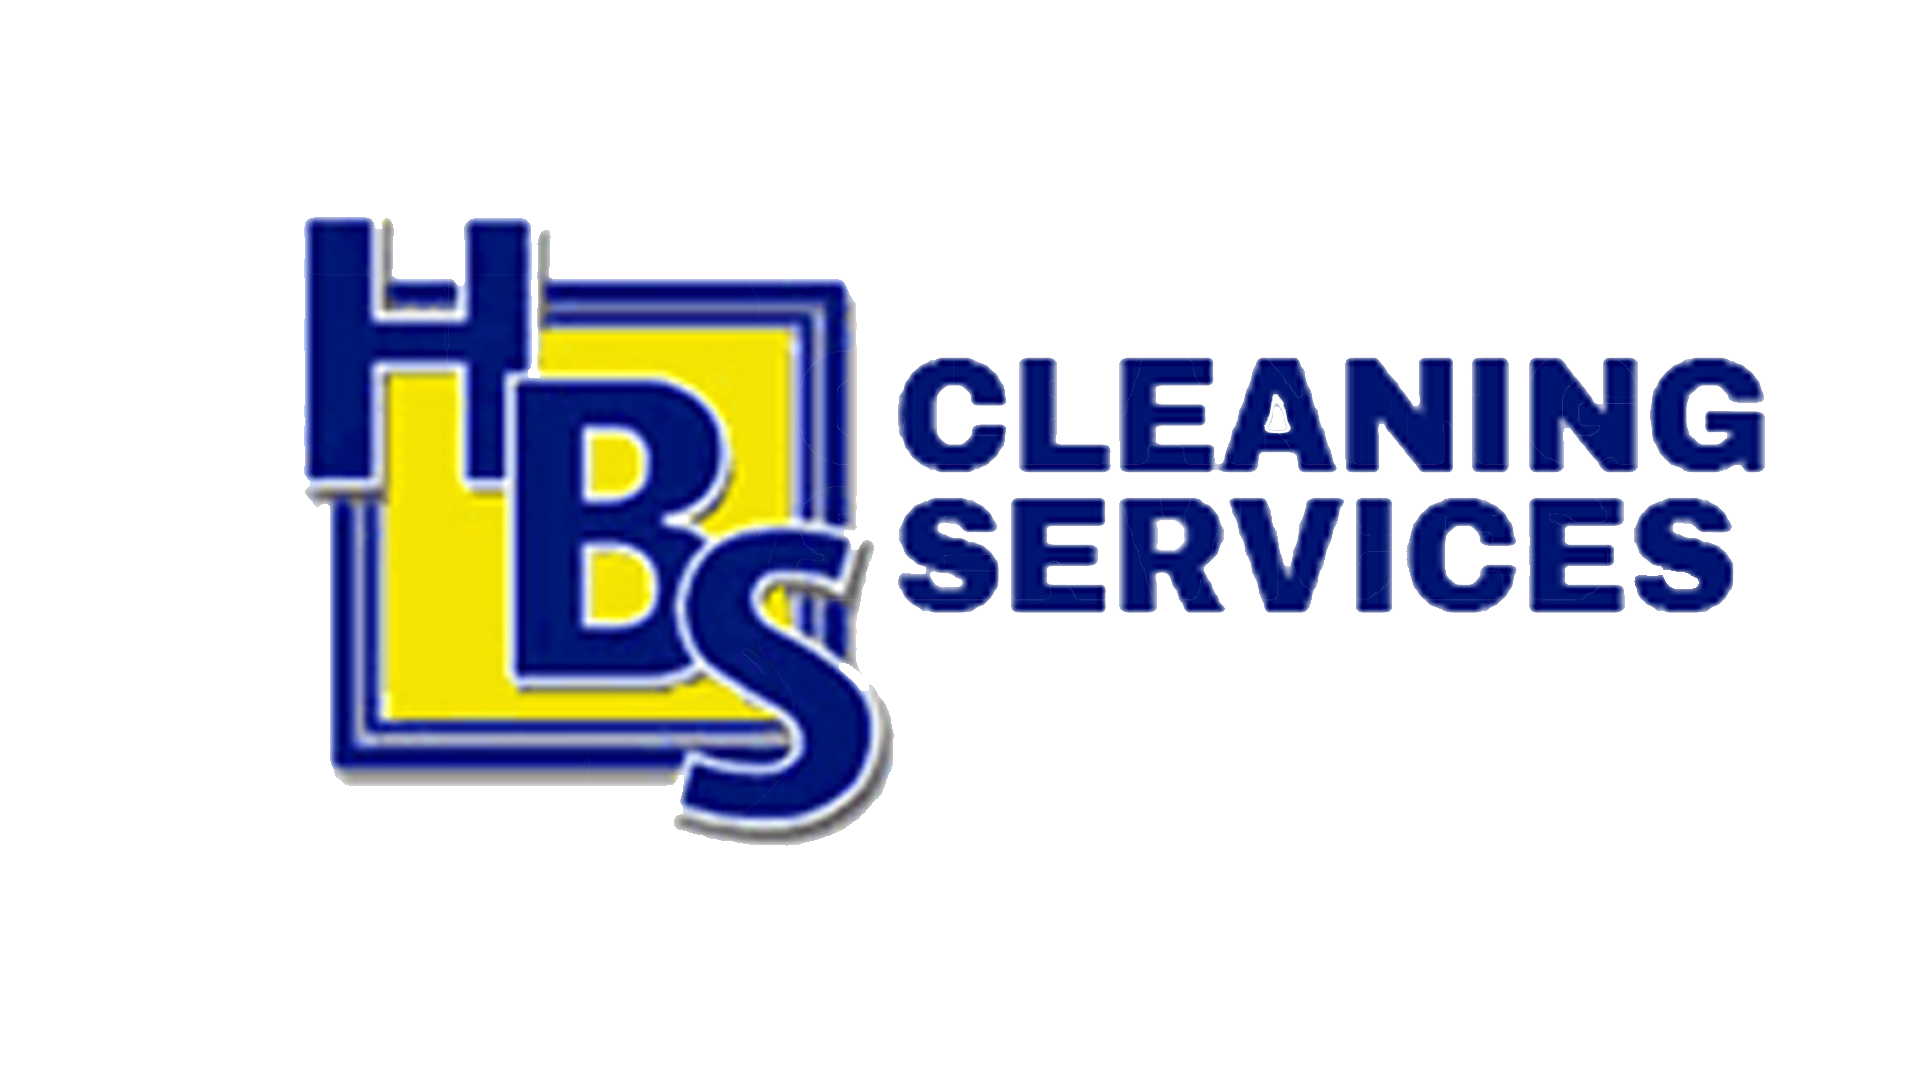 HBS Cleaning Services